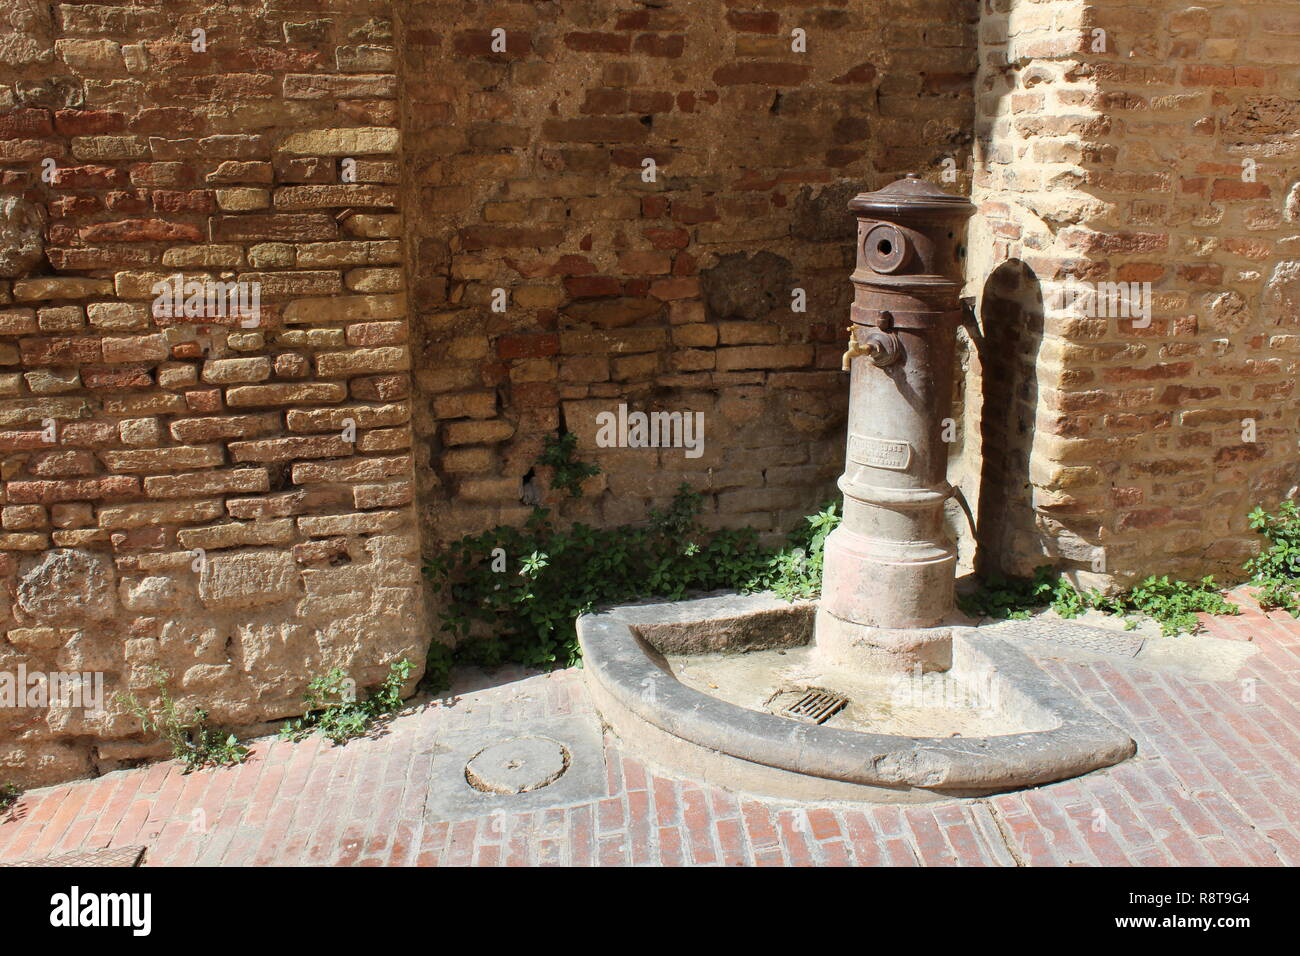 Drinking fountain in front of a very old wall in San Gimignano, Italy Stock Photo